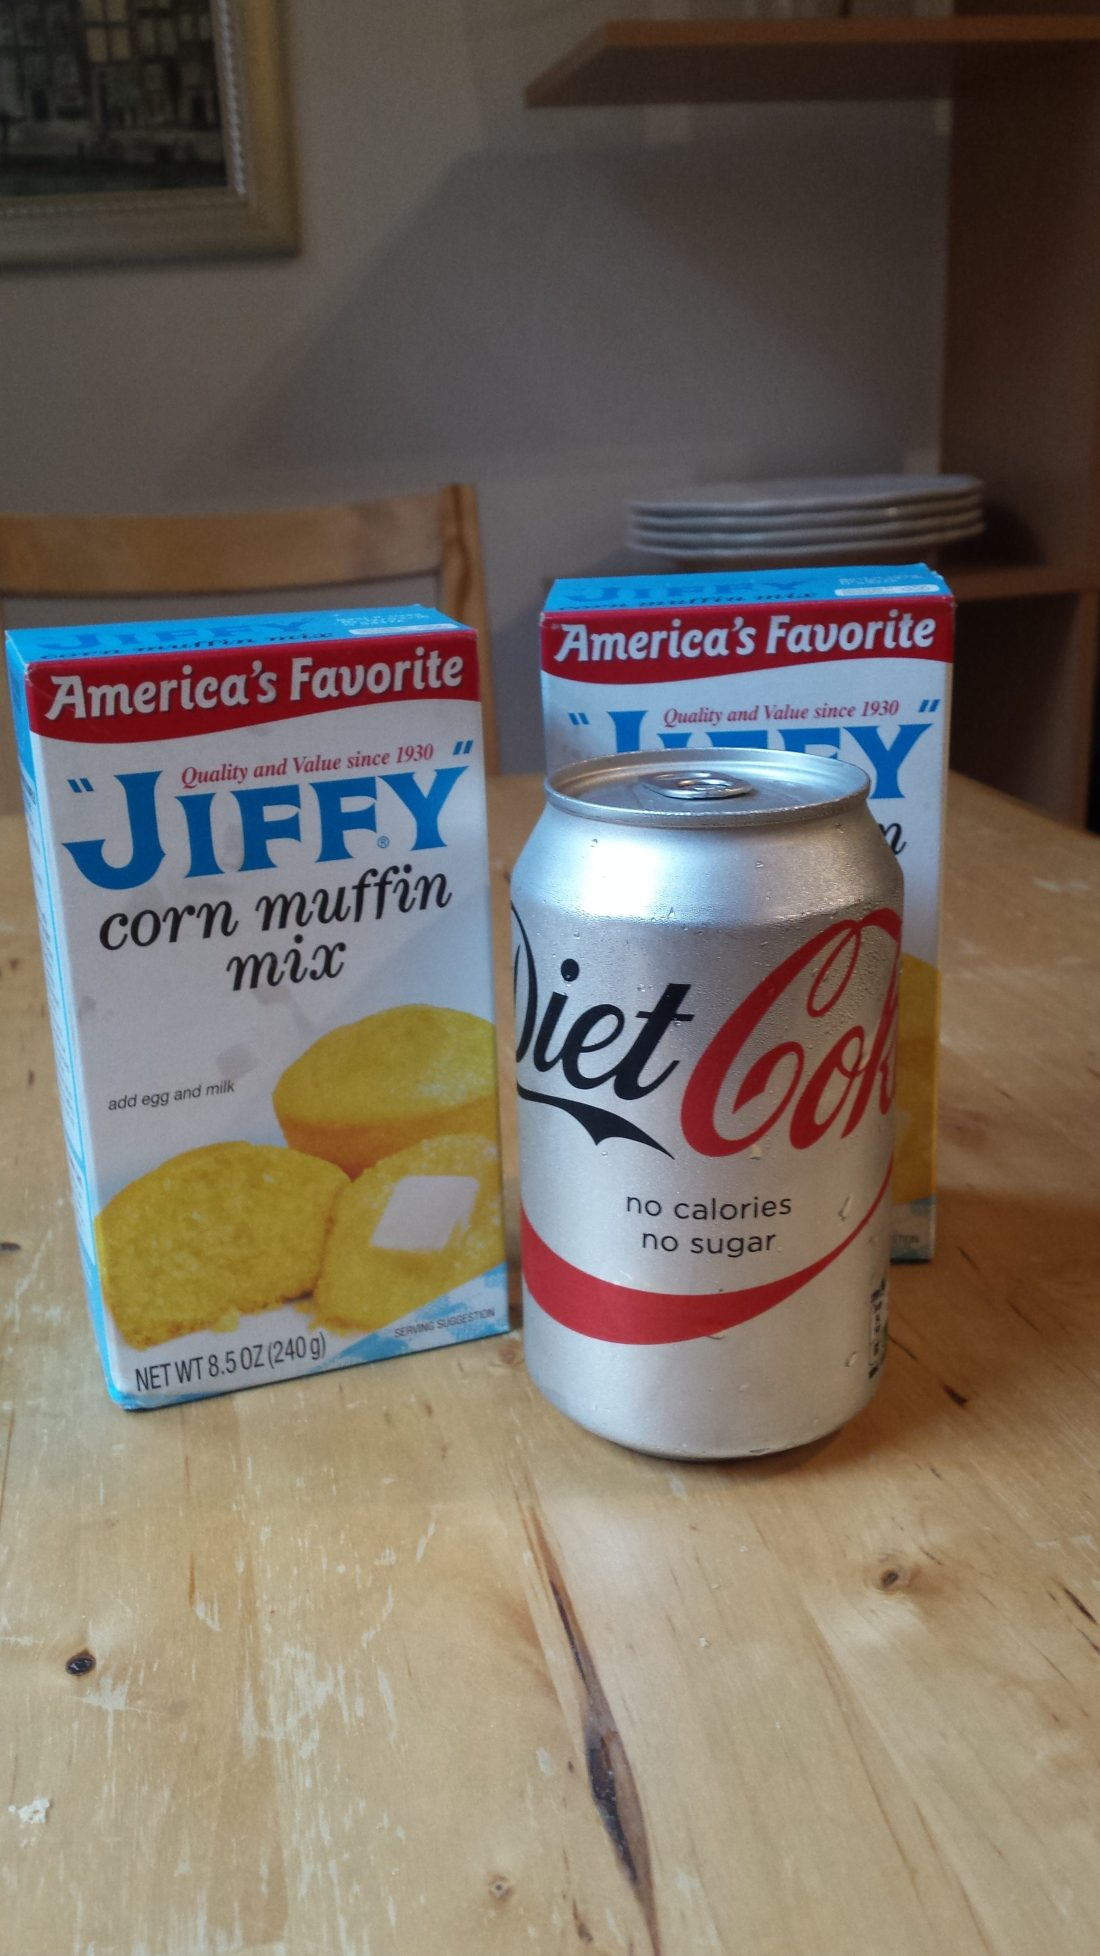 Jiffy corn bread mix and Diet Coke on a table